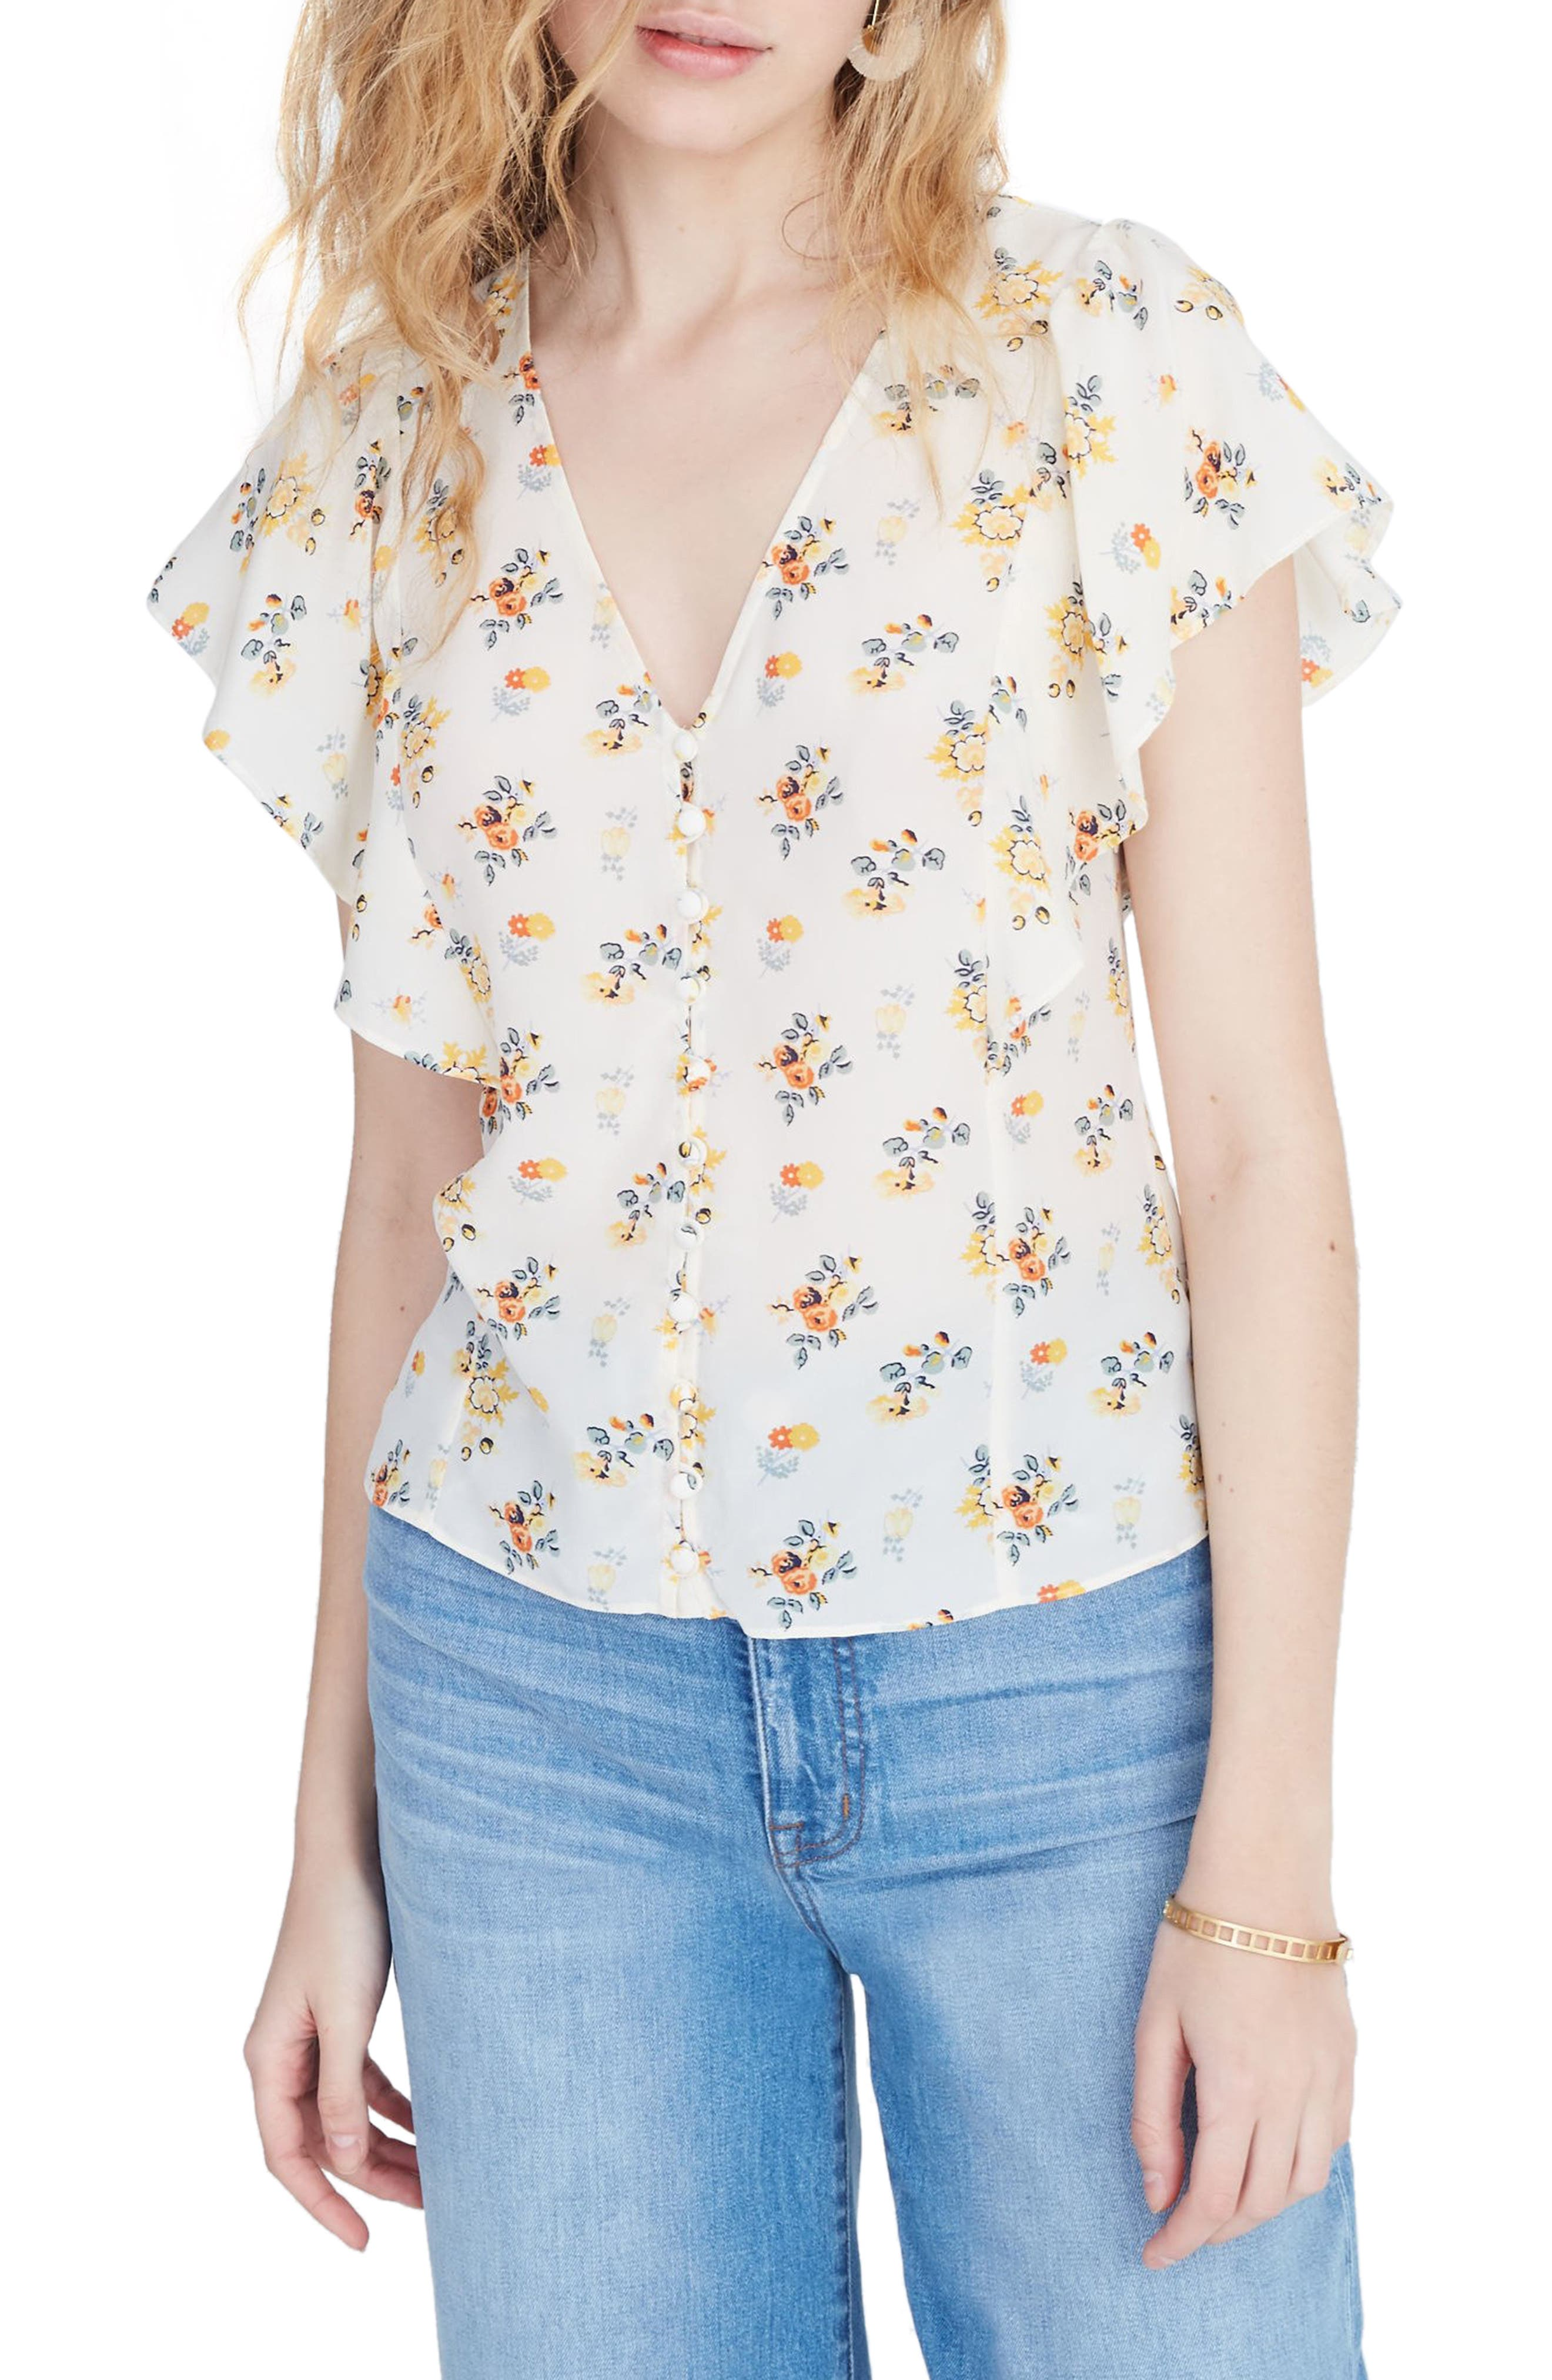 6585f89753f Buy madewell tops for women - Best women's madewell tops shop ...